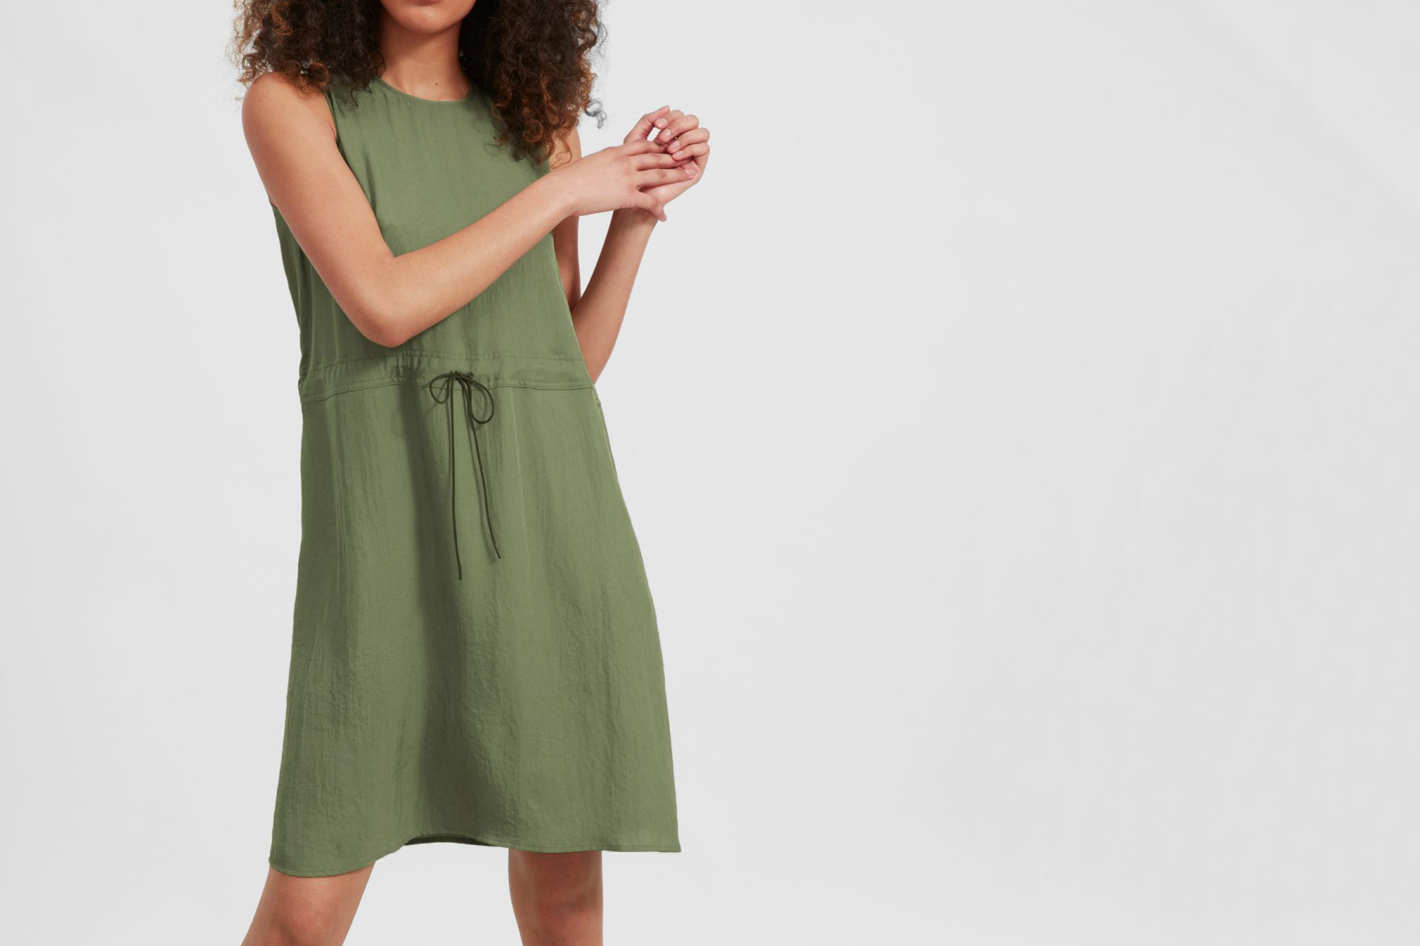 Everlane Japanese GoWeave Light Drawstring Dress